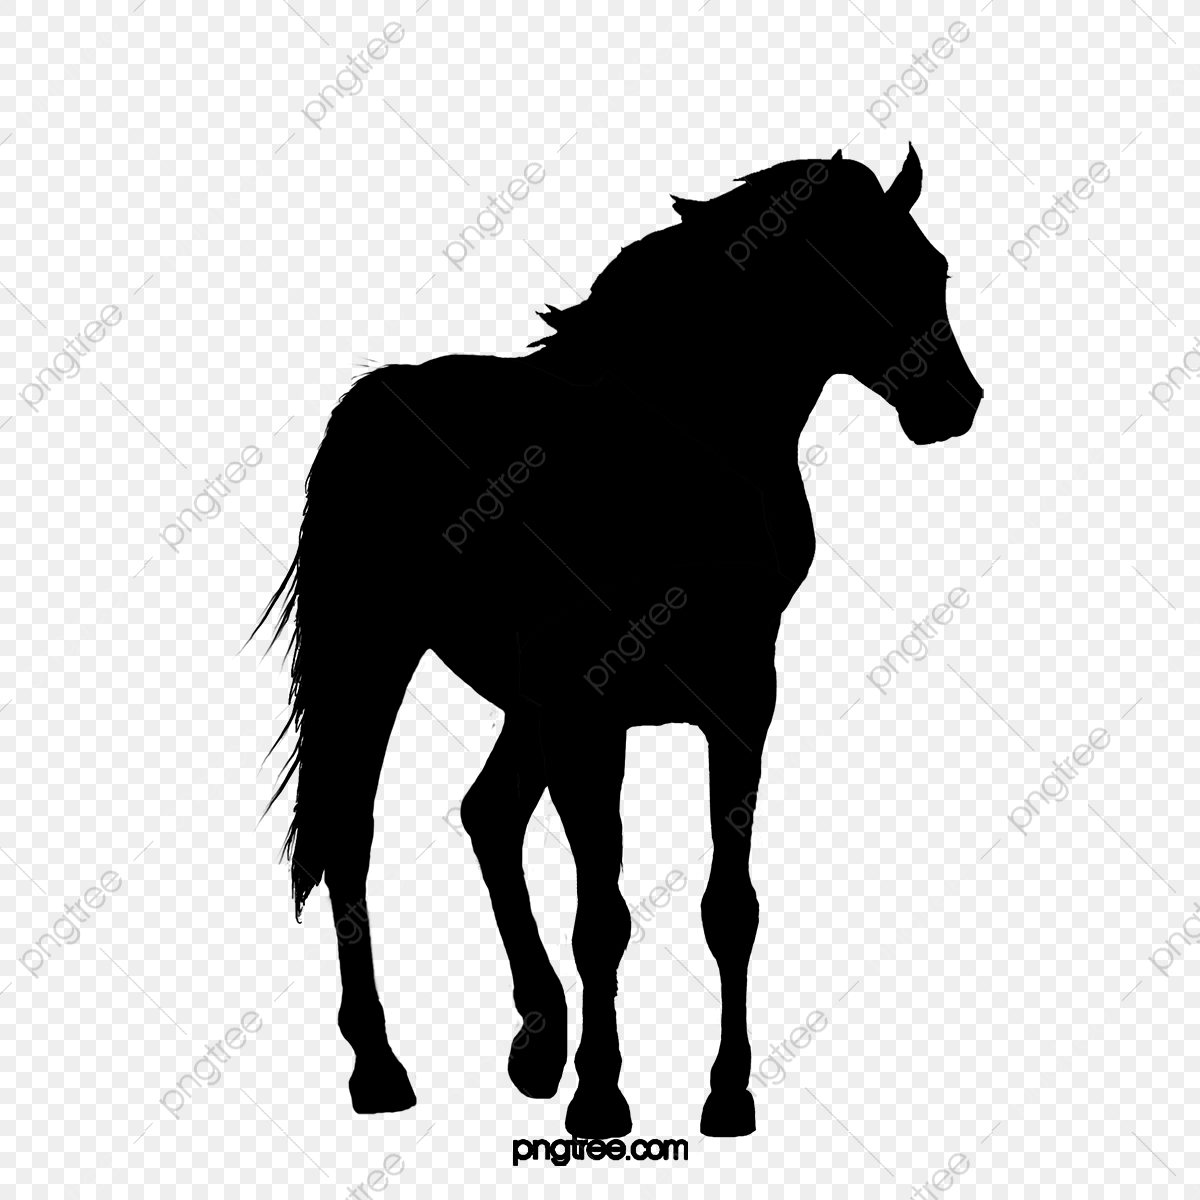 A Horse Silhouette Horse Clipart Black Horse Png Transparent Clipart Image And Psd File For Free Download